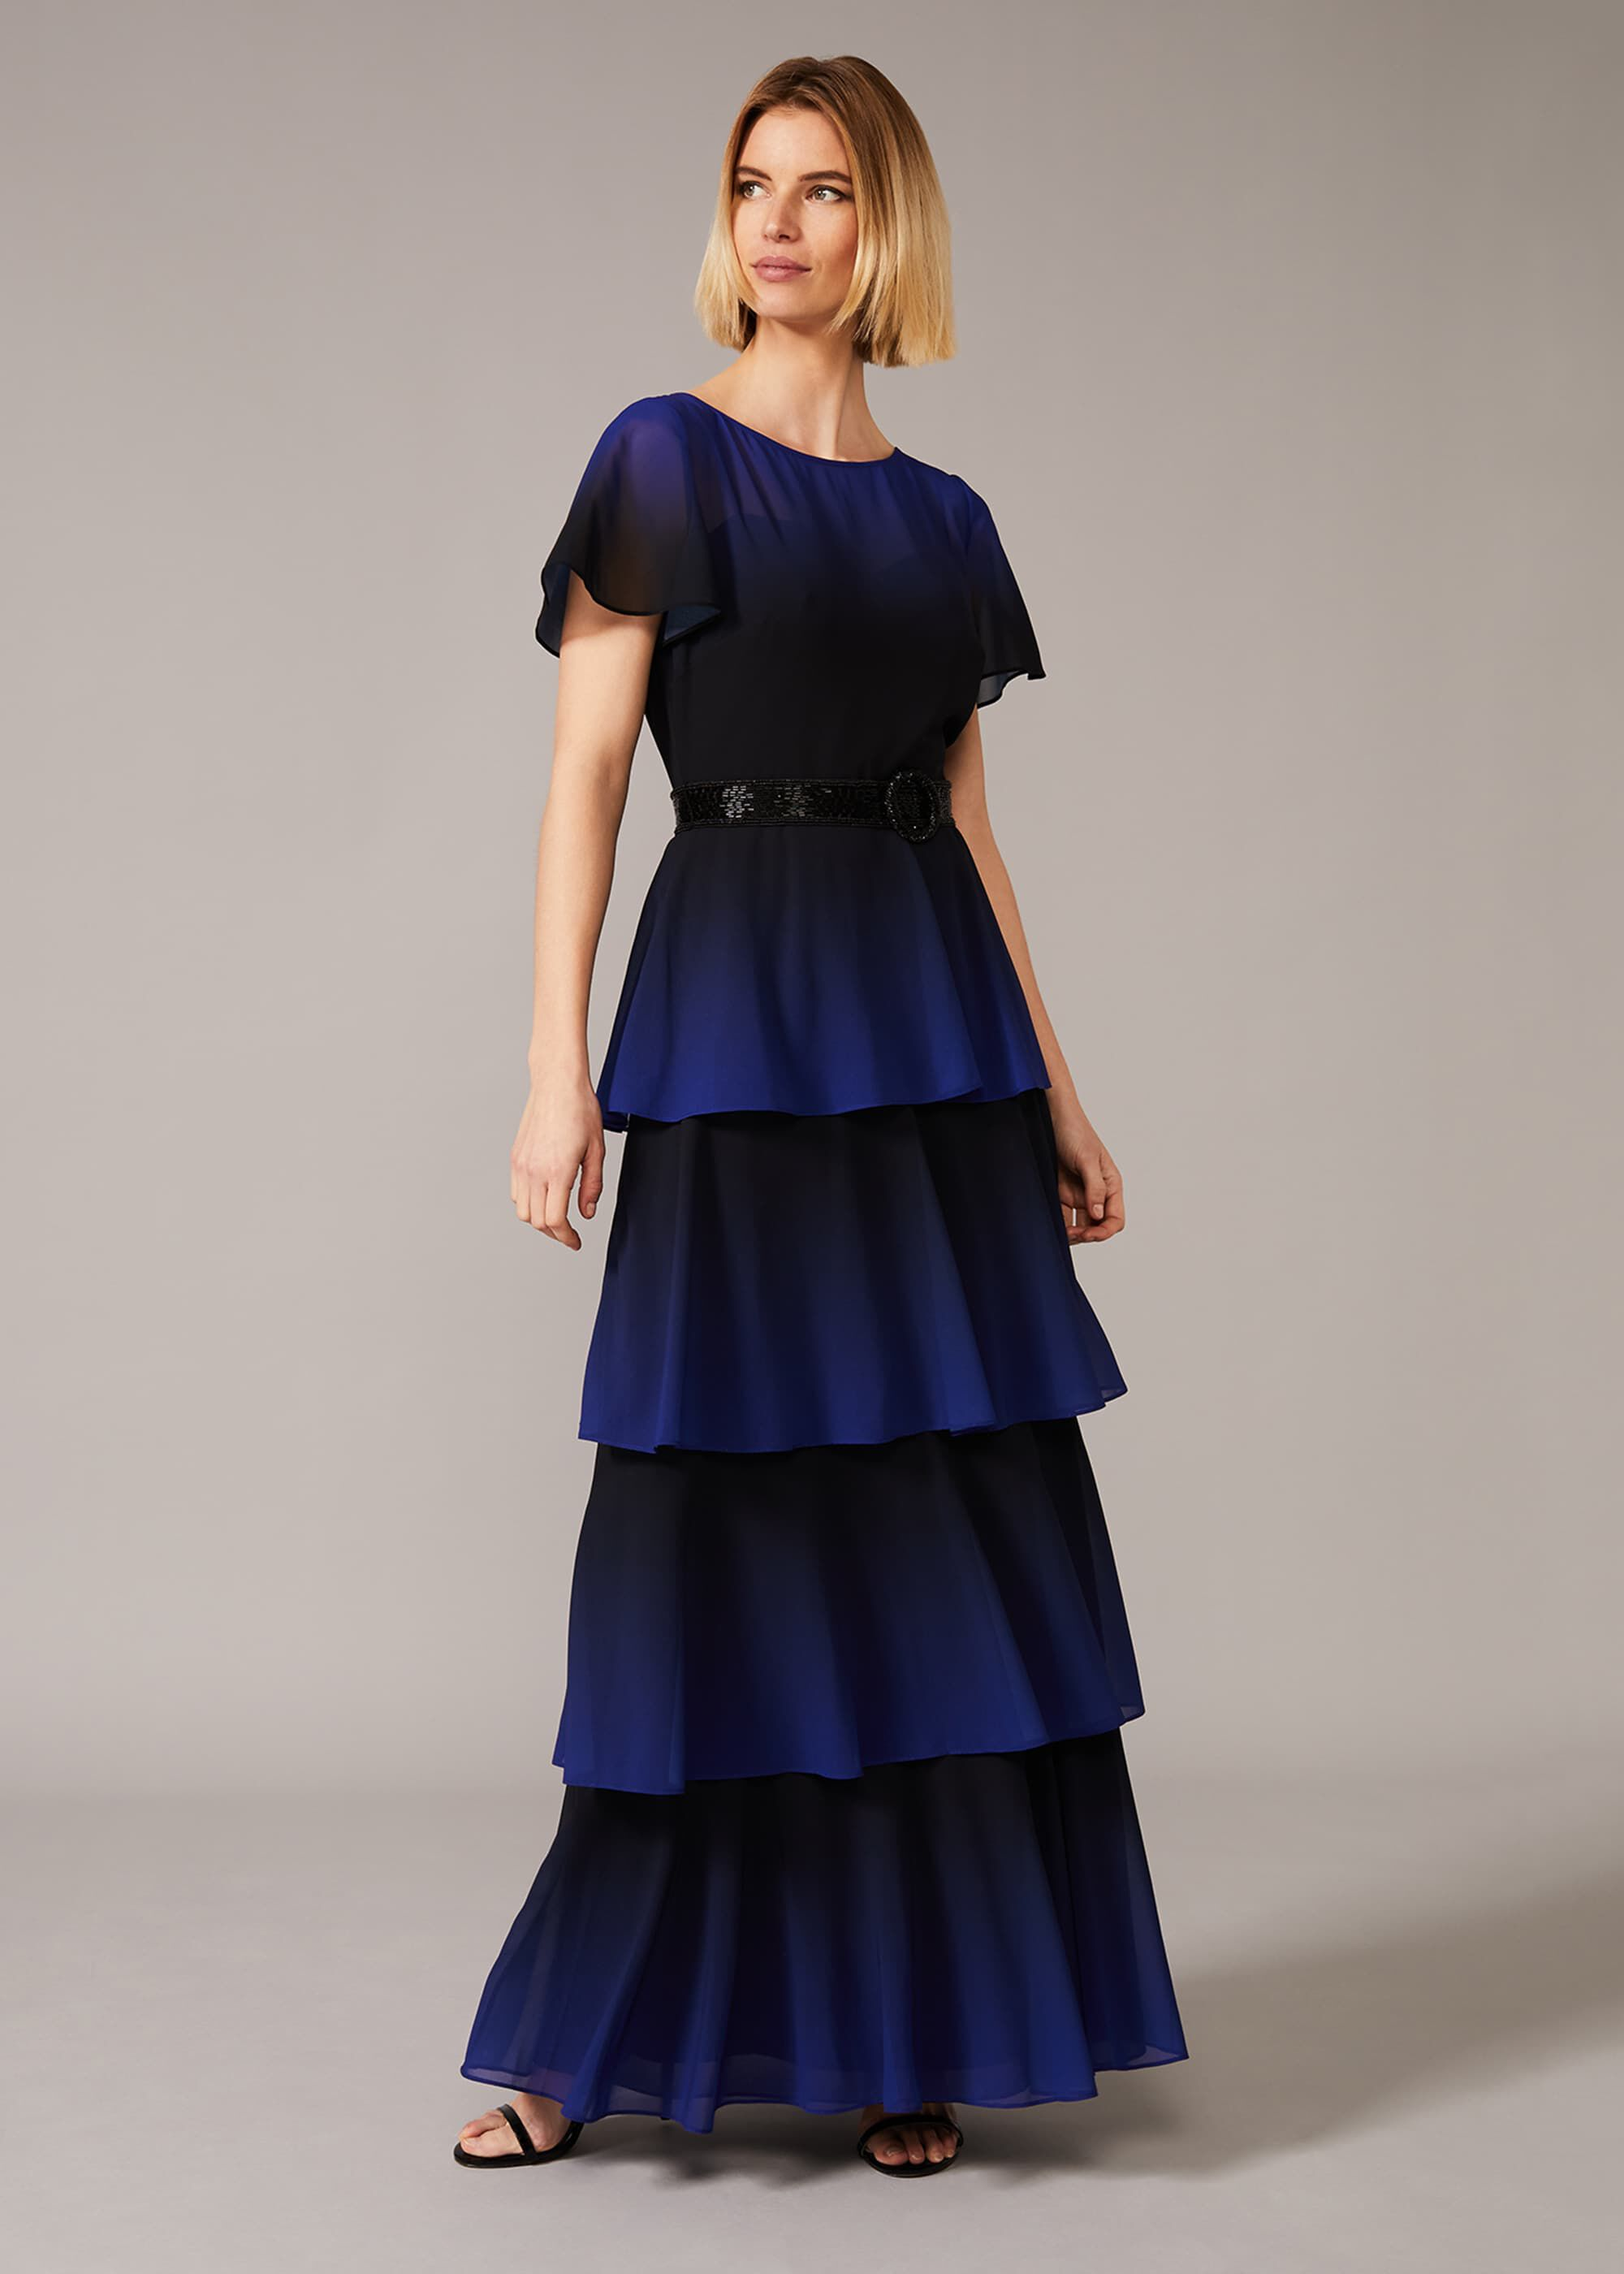 Phase Eight Rosalie Dipdye Tiered Dress, Black, Maxi, Occasion Dress